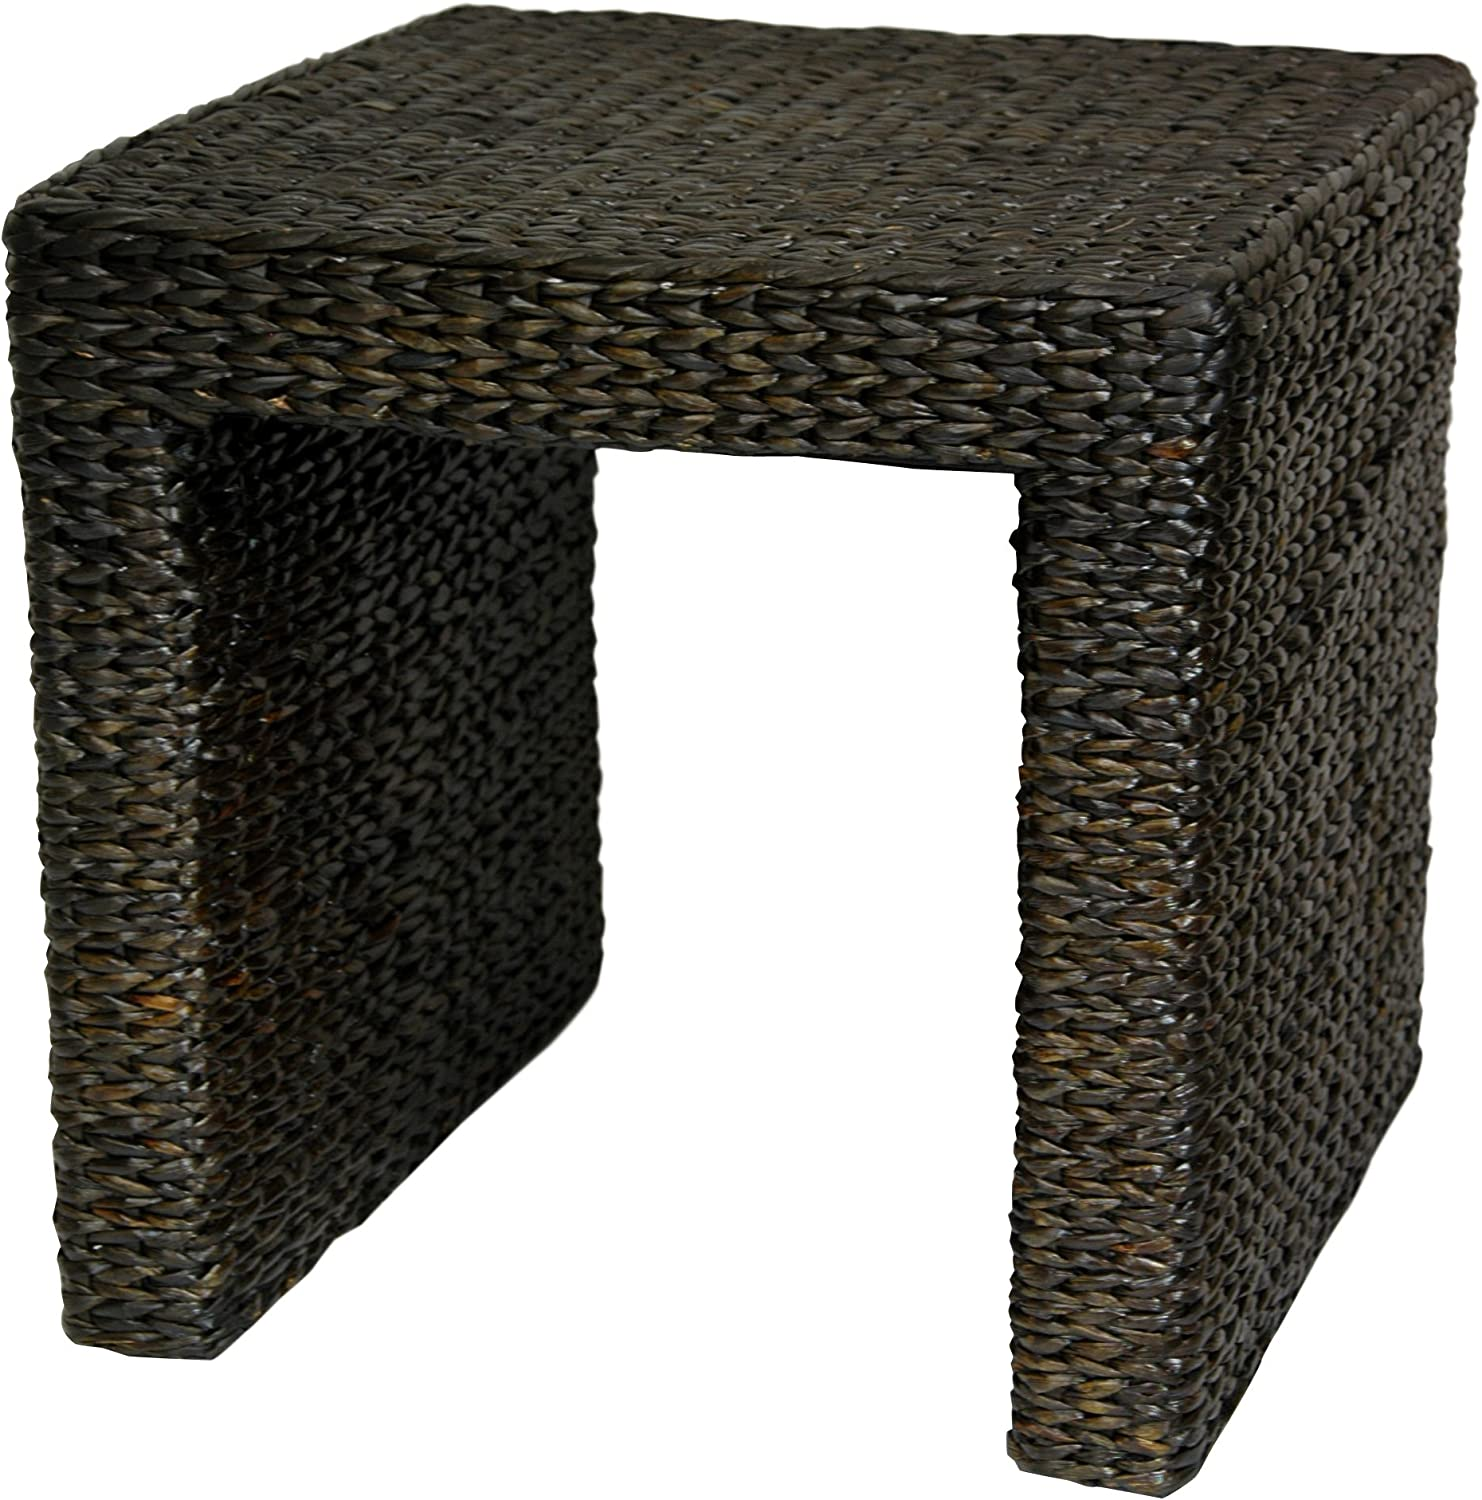 Oriental Furniture Great Good Best Simple Rustic Beautiful, 18-Inch Woven Natural Fiber Water Hyacinth Square End Table Night Stand, Black